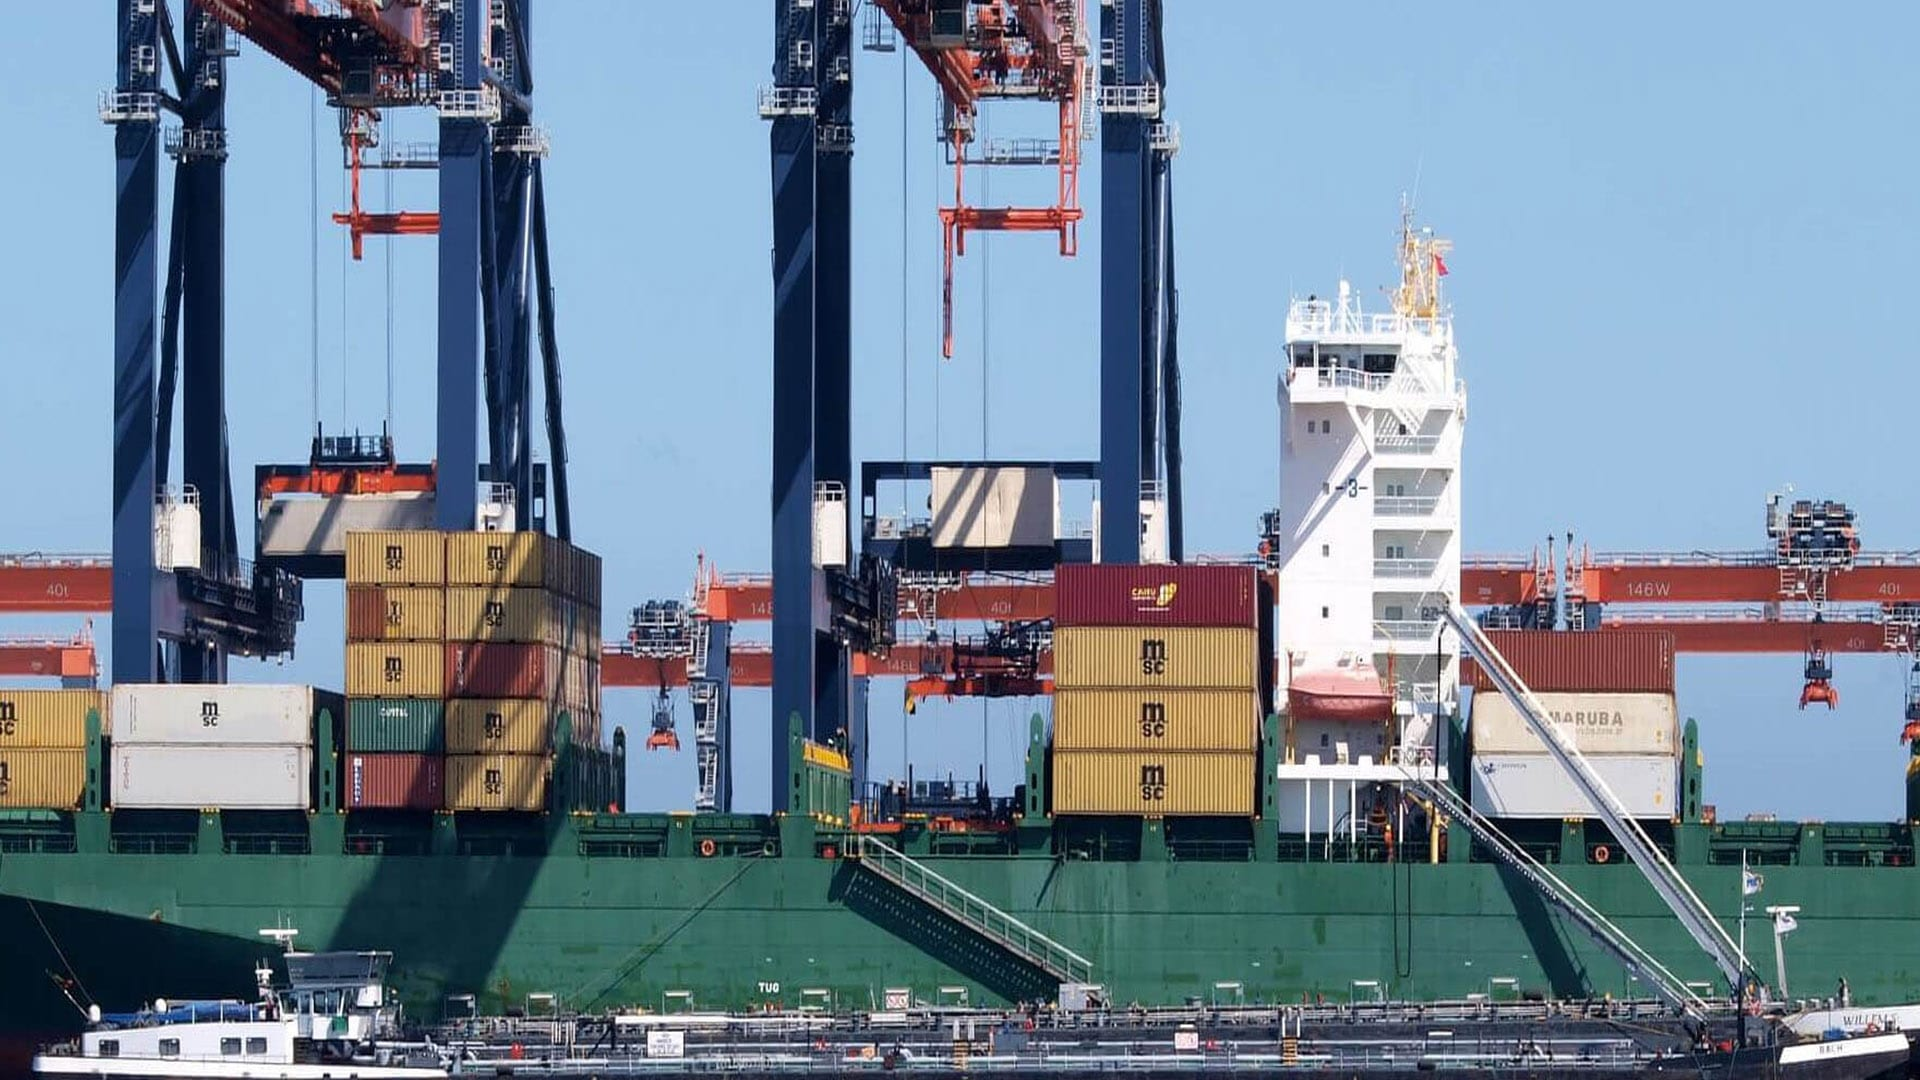 Slowing World Trade Impacts Port of Rotterdam Volumes